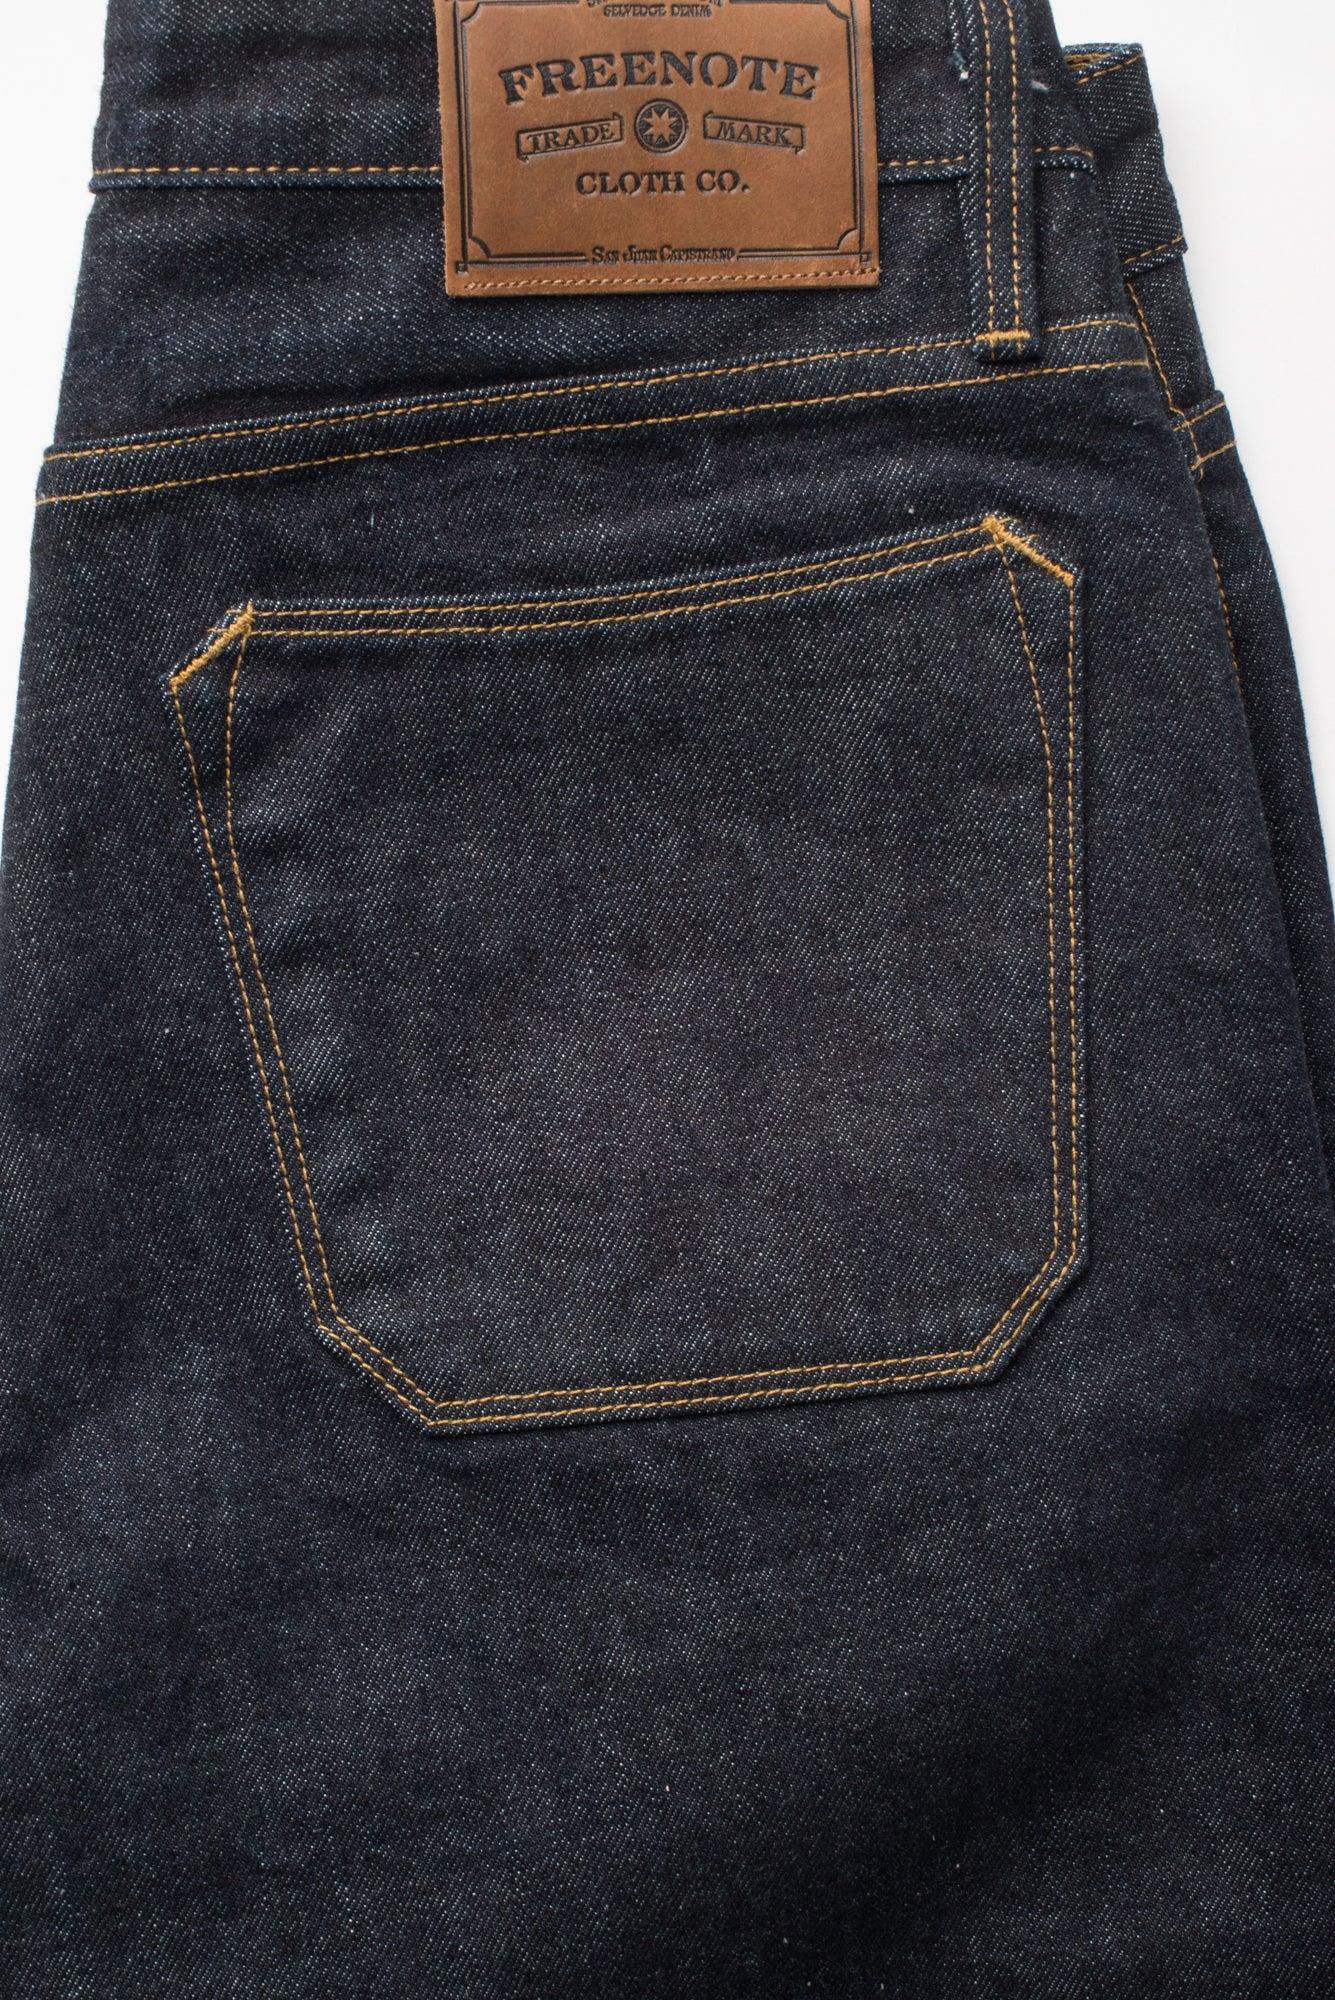 Portola <span> 14.25 oz Rinsed Japanese Denim </span>